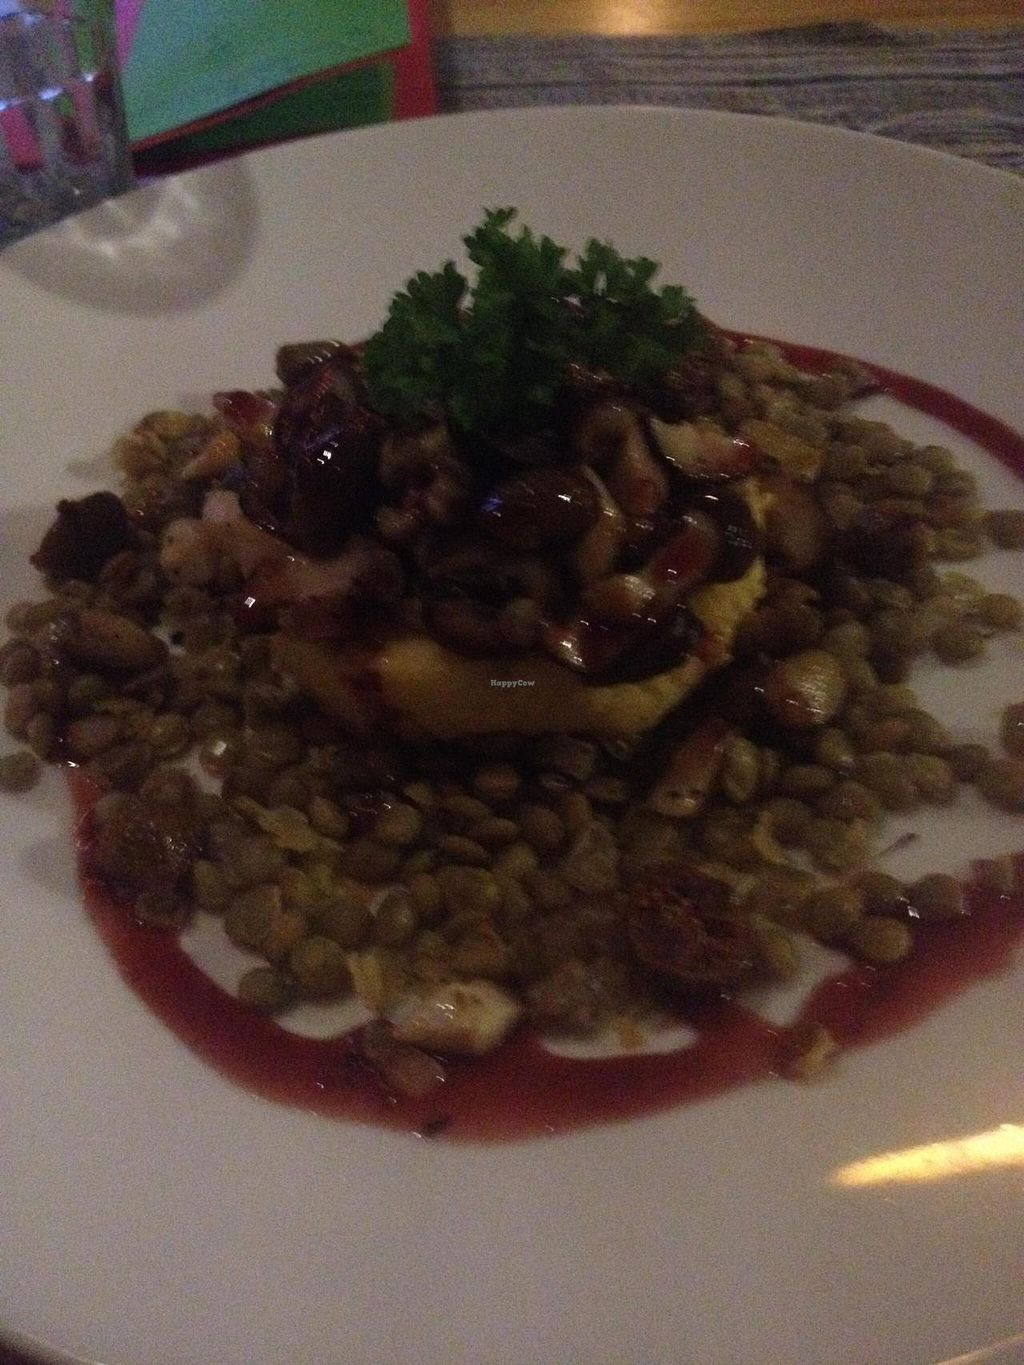 """Photo of Prem Bistro and Cafe  by <a href=""""/members/profile/Kimxula"""">Kimxula</a> <br/>Polenta with fig, hazelnut and lentils...delicious! <br/> June 1, 2015  - <a href='/contact/abuse/image/46313/104340'>Report</a>"""